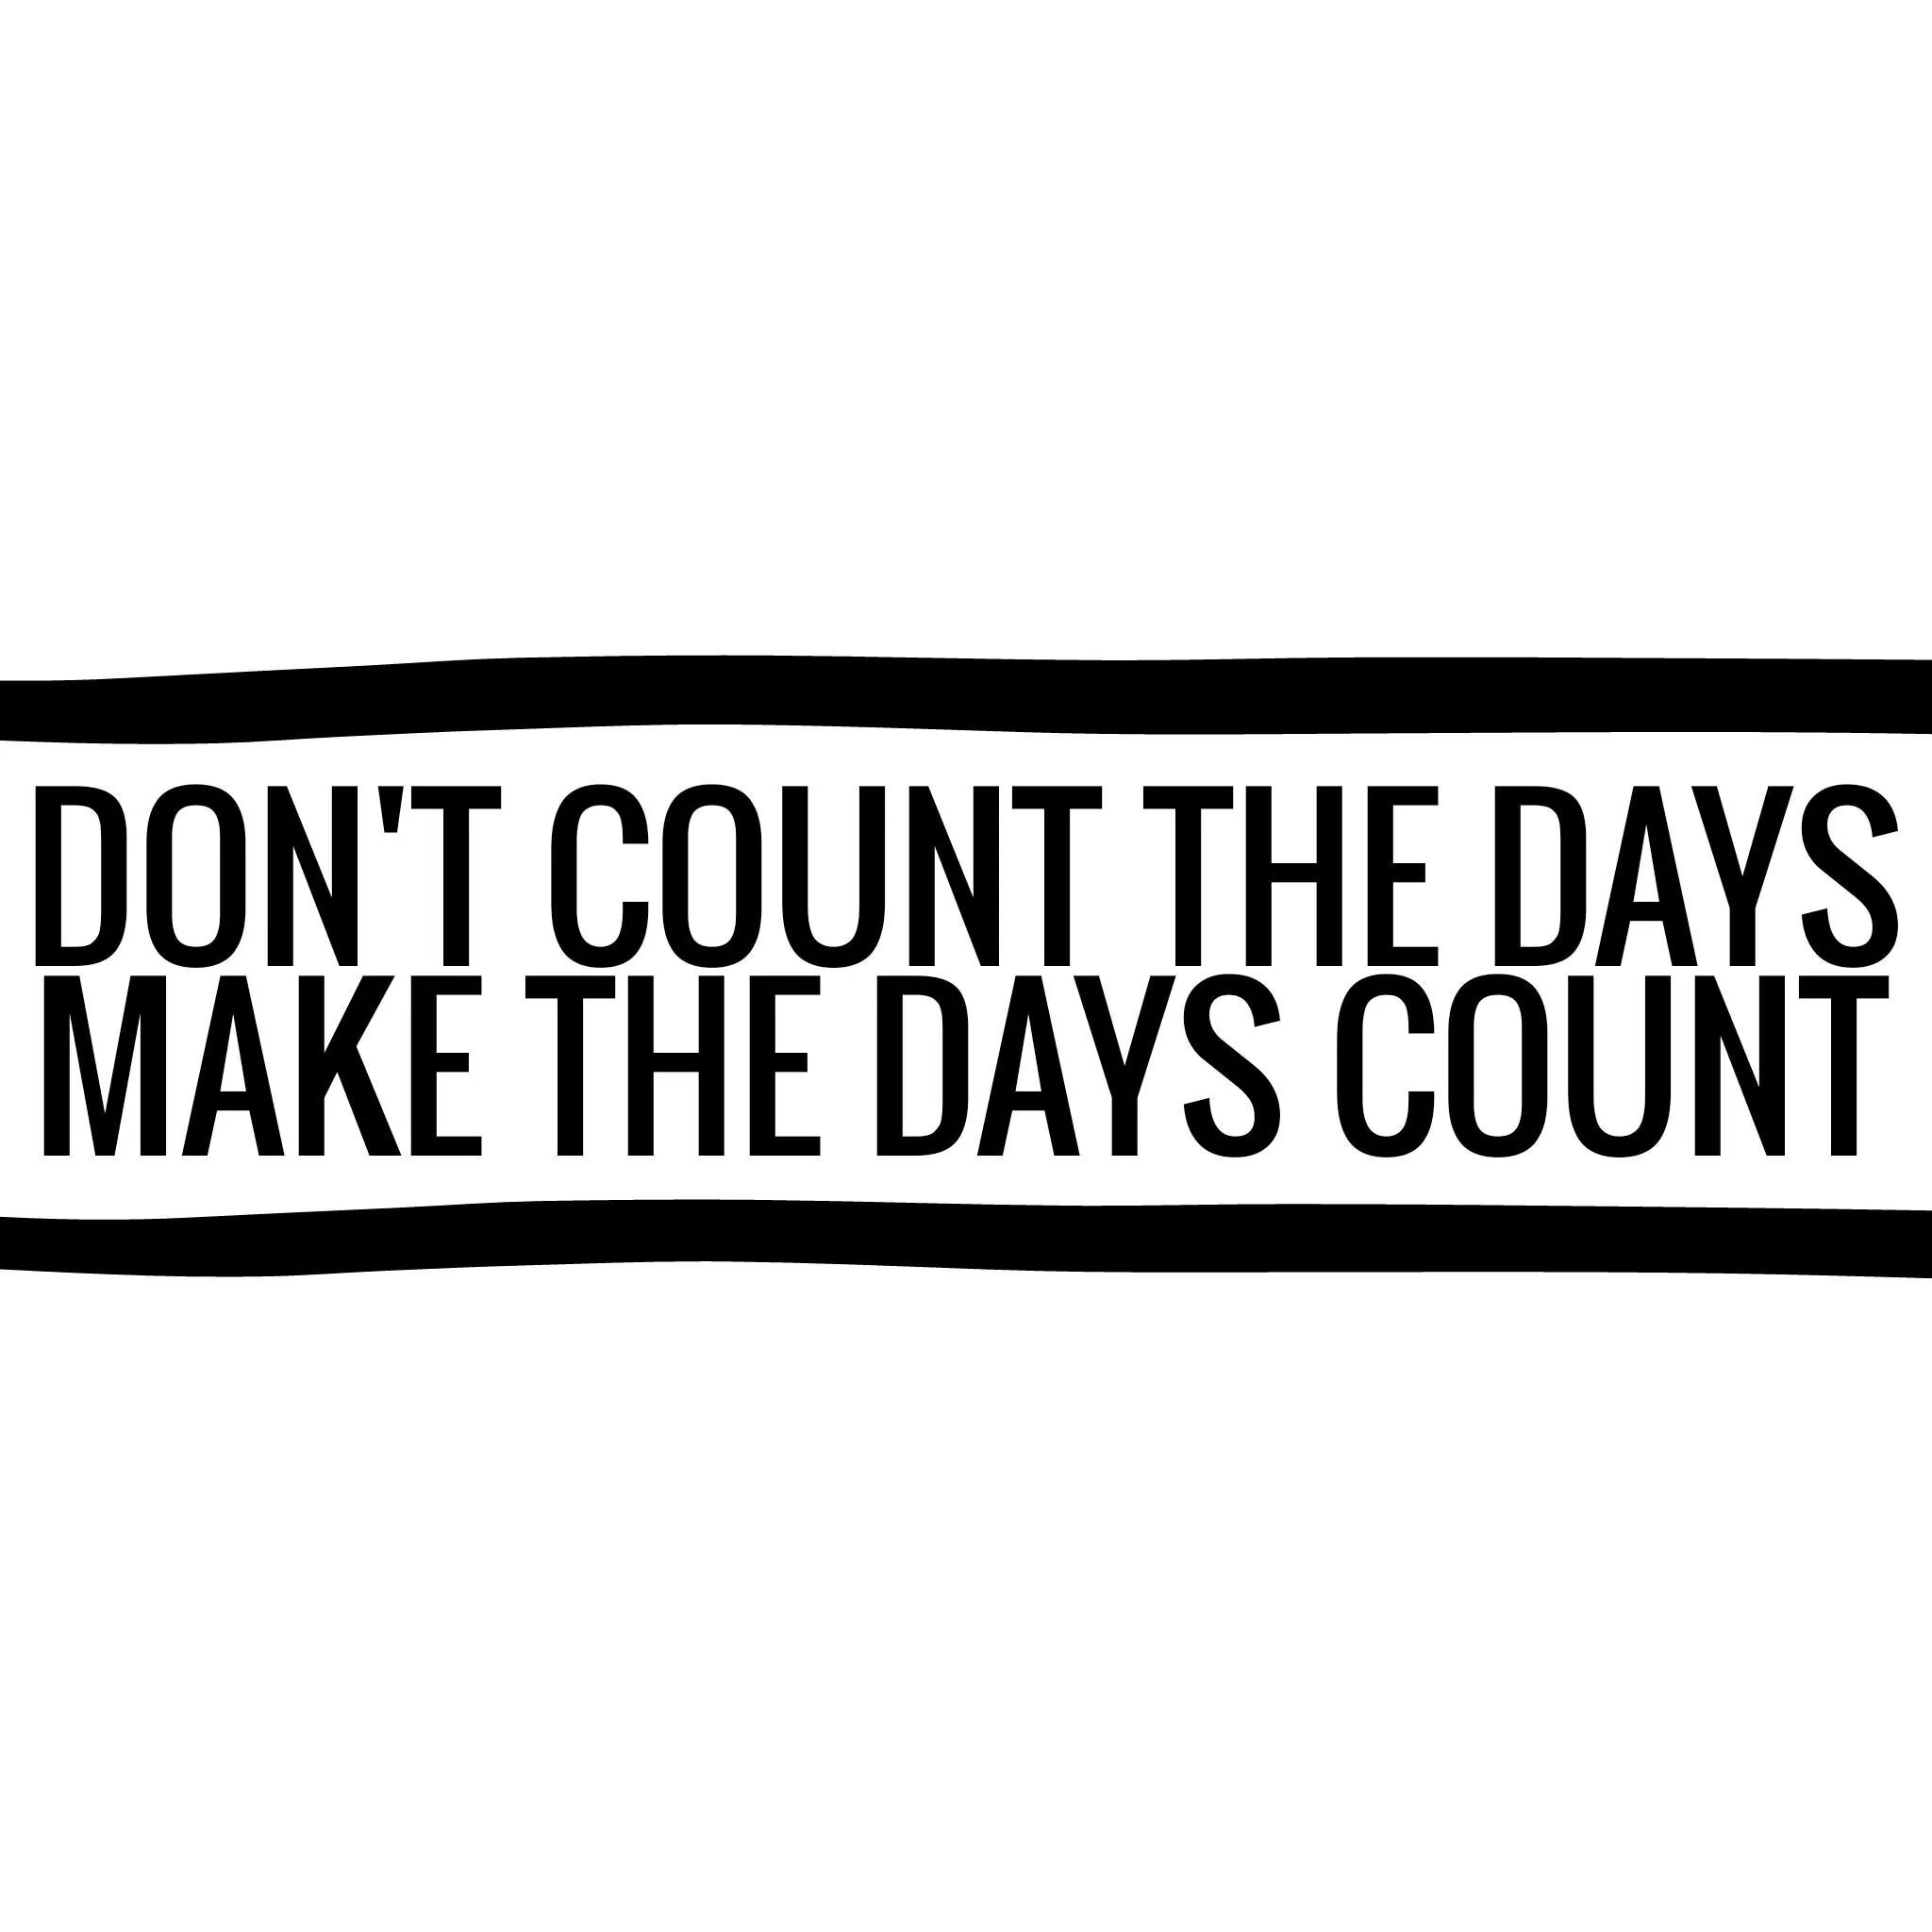 QUOTE | INSPIRATION | MAKE THE DAYS COUNT!! | RUYS